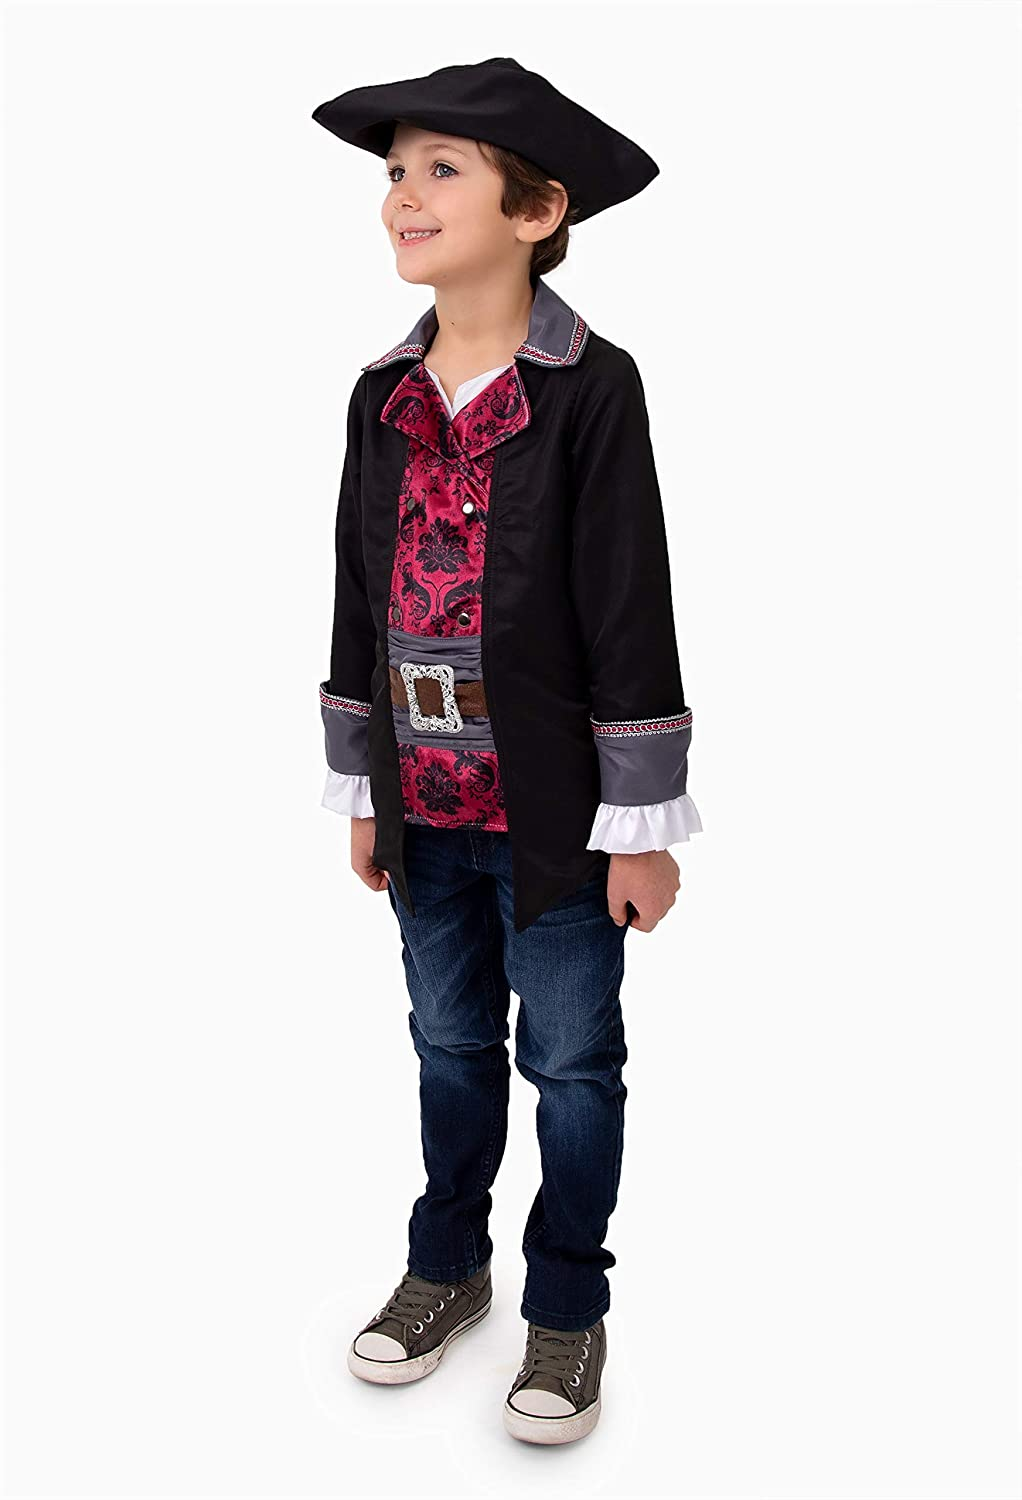 Little Adventures Pirate Captain Costume Set